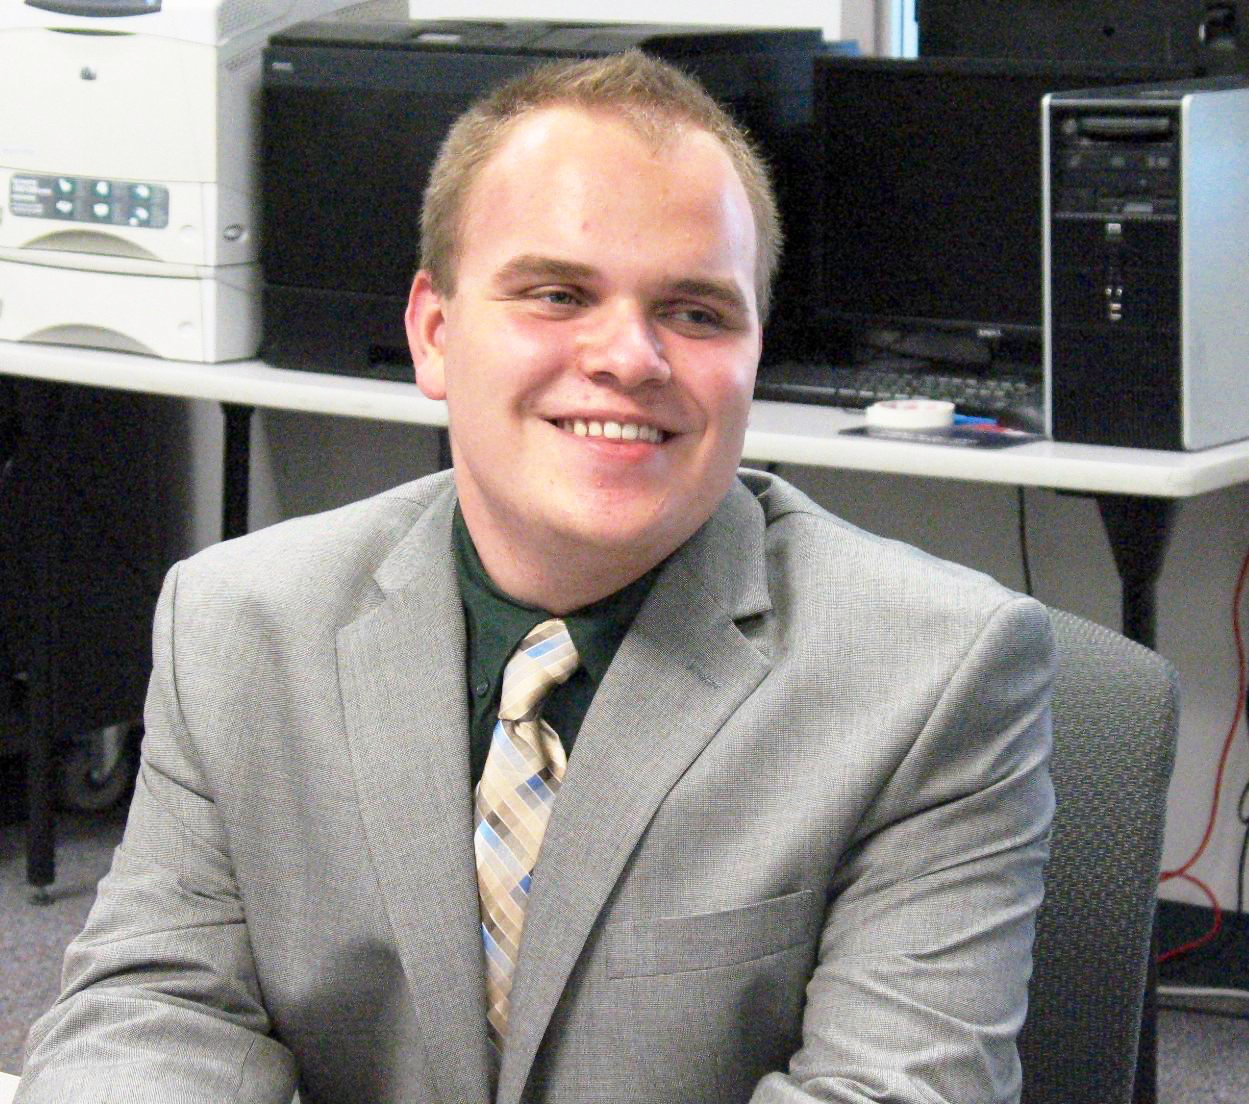 Beach grad's efforts pave way for future in technology